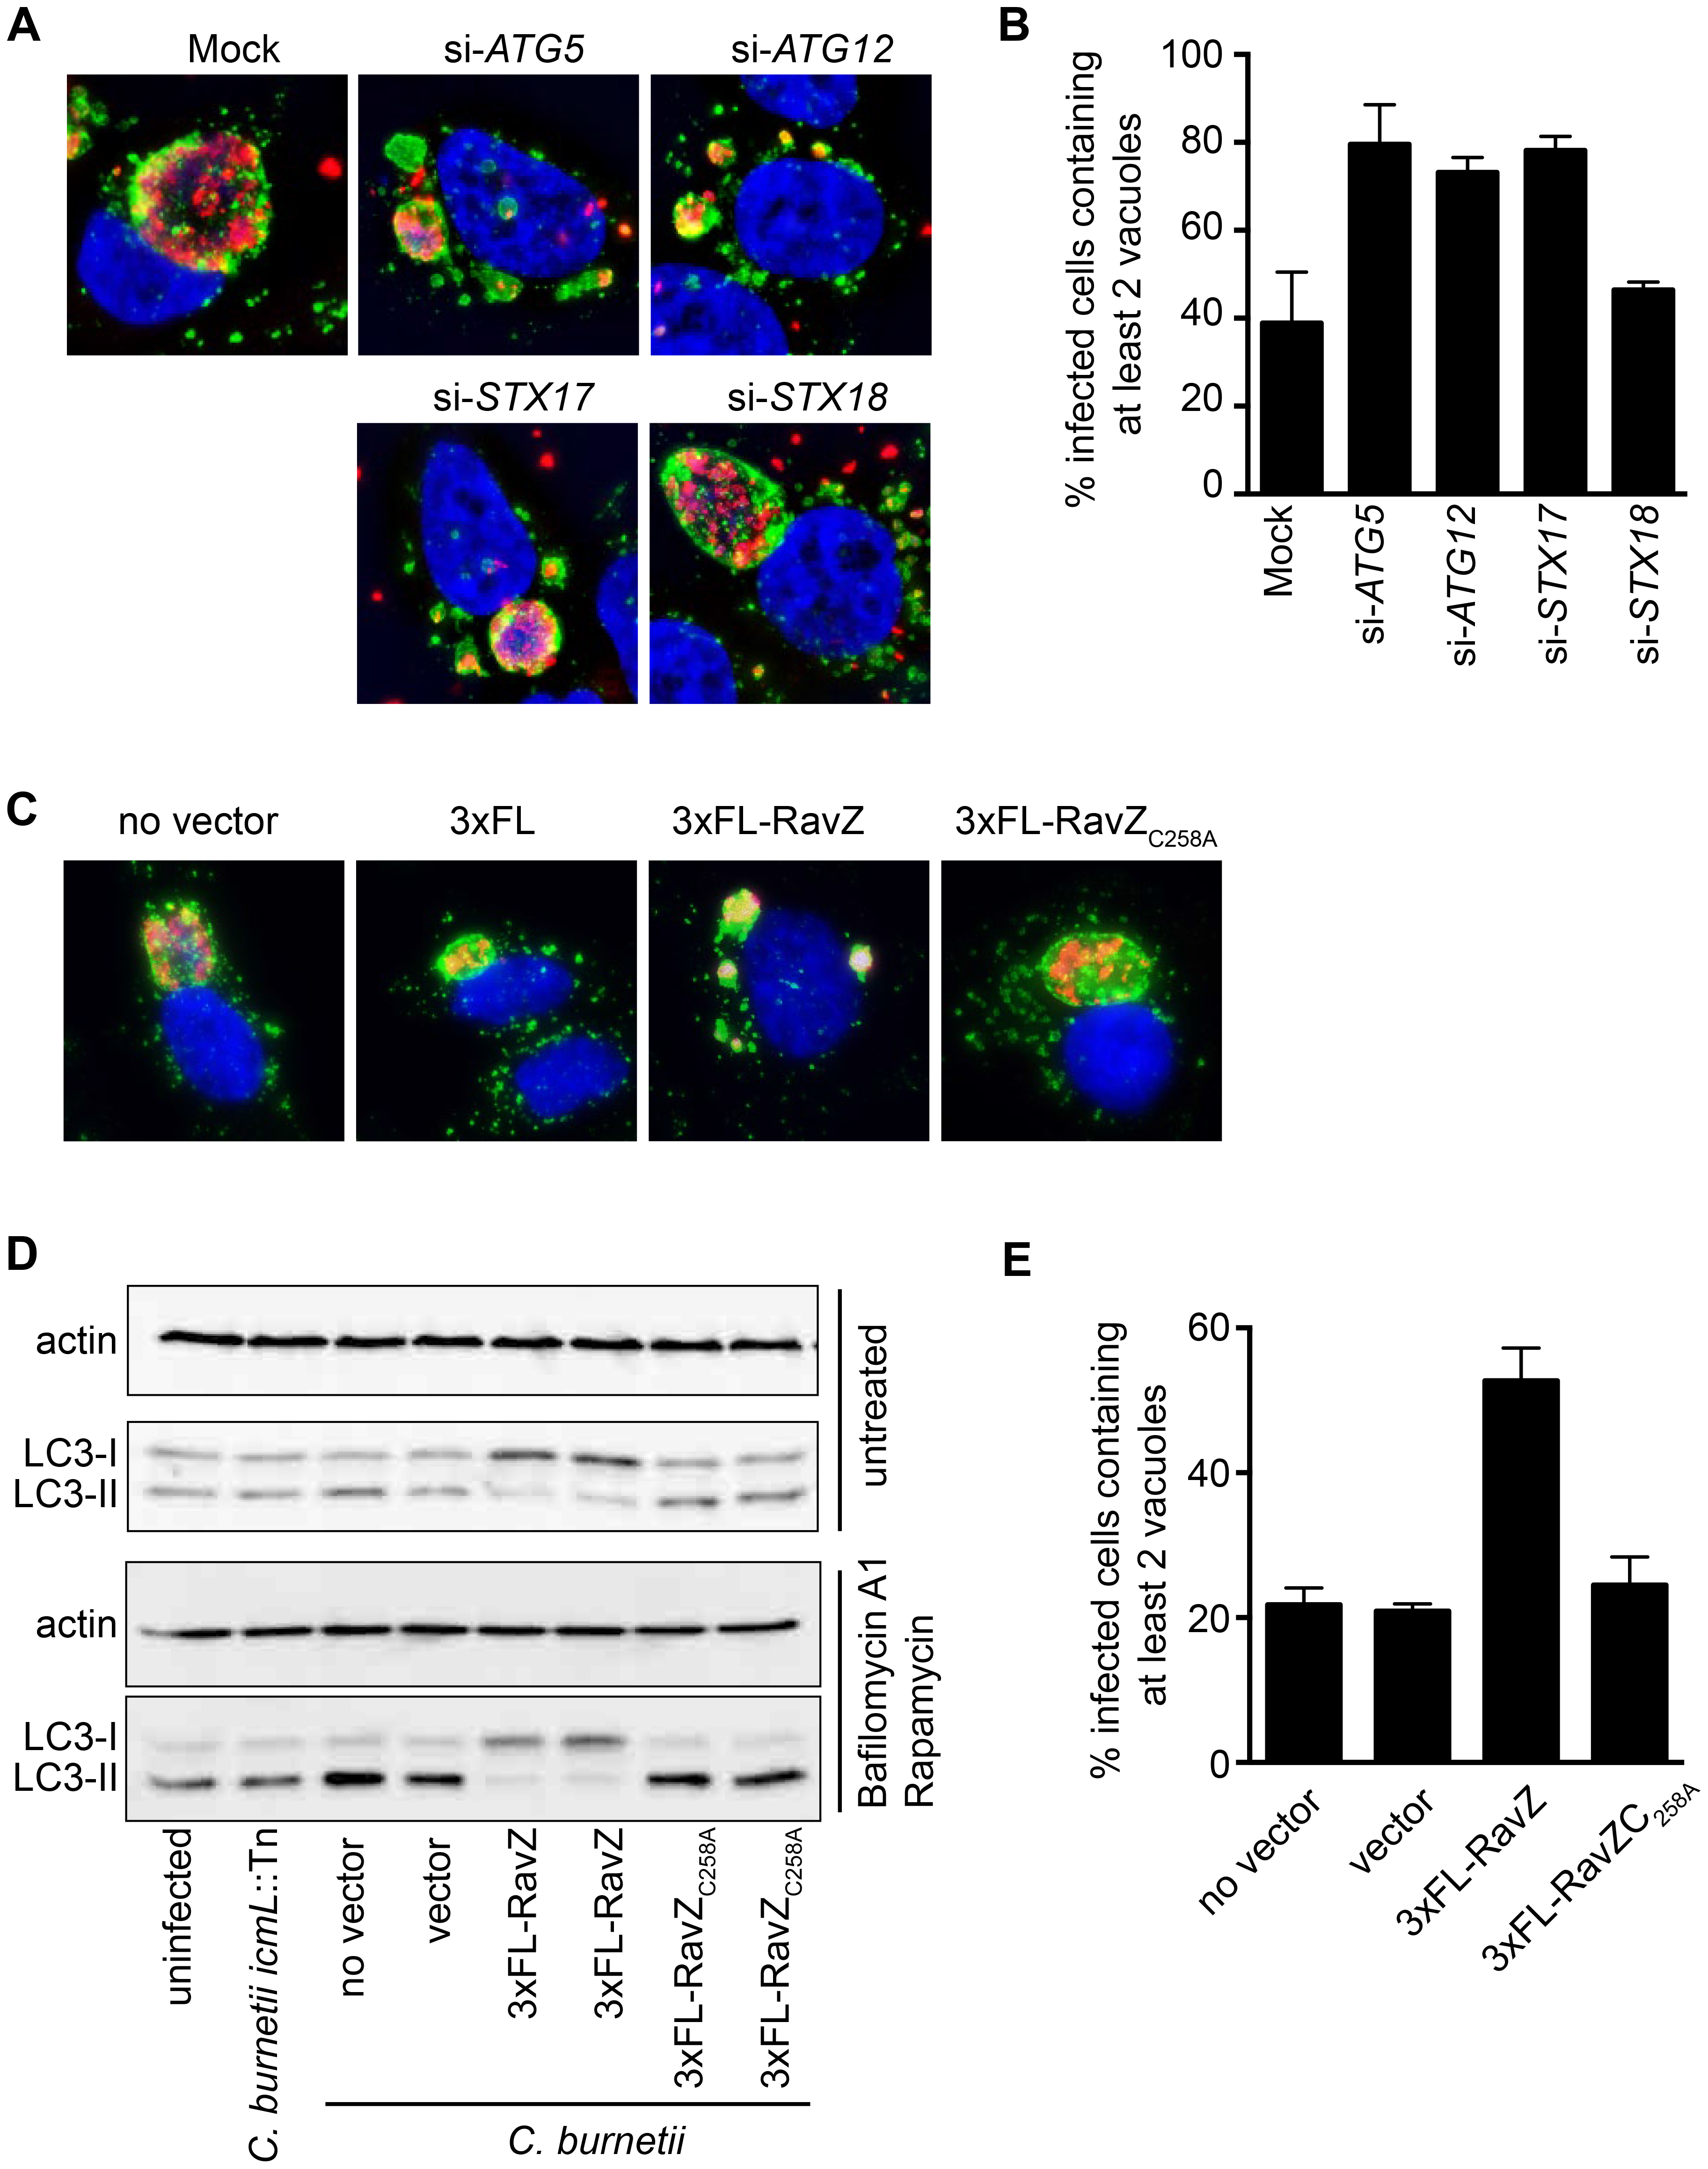 Autophagy is required for homotypic fusion of CCVs.